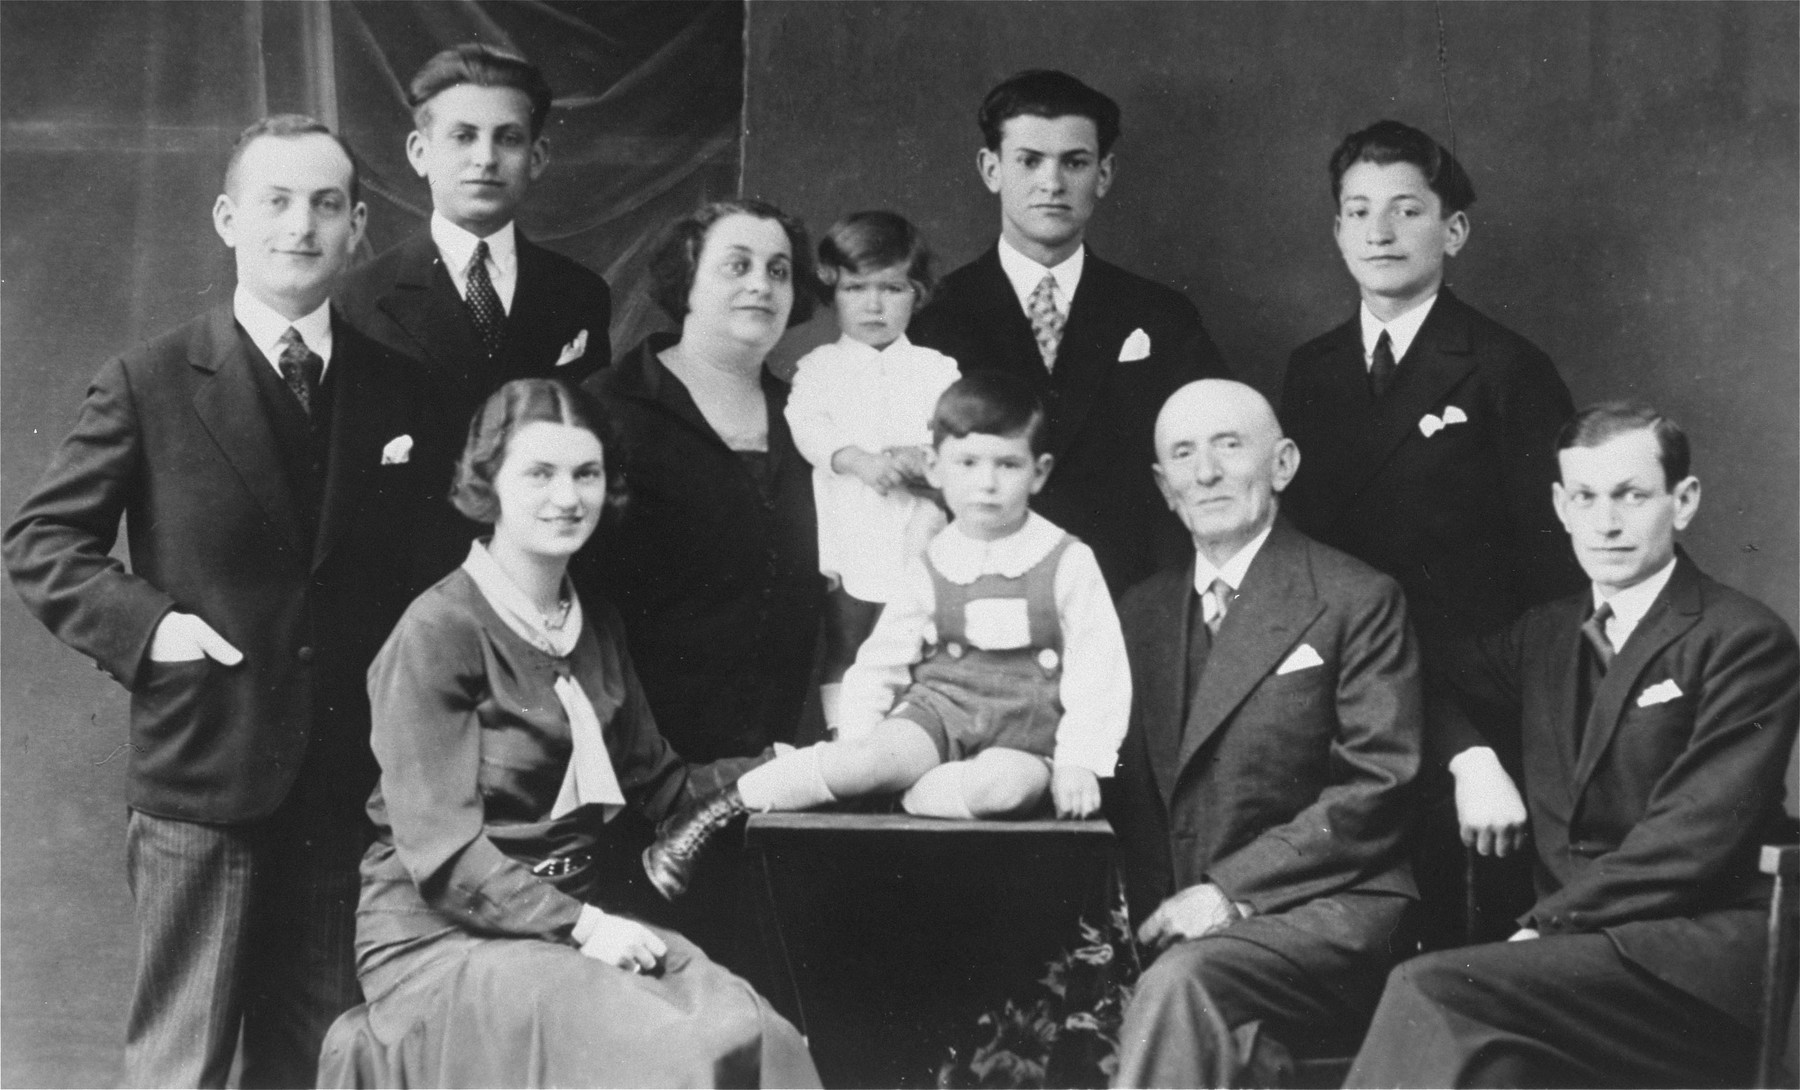 Studio portrait of an extended Jewish familyin Pozega, Croatia.  Pictured are members of the Klein/Kupfermann family.  Seated in the front row from left to right are: Blanka and Aurel Kupfermann, Julius and Milan Klein.  Standing behind from left to right are: Zlatan, Zdenko and Rosa Klein, Marta Kupfermann, and Dragan and Bruno Klein.